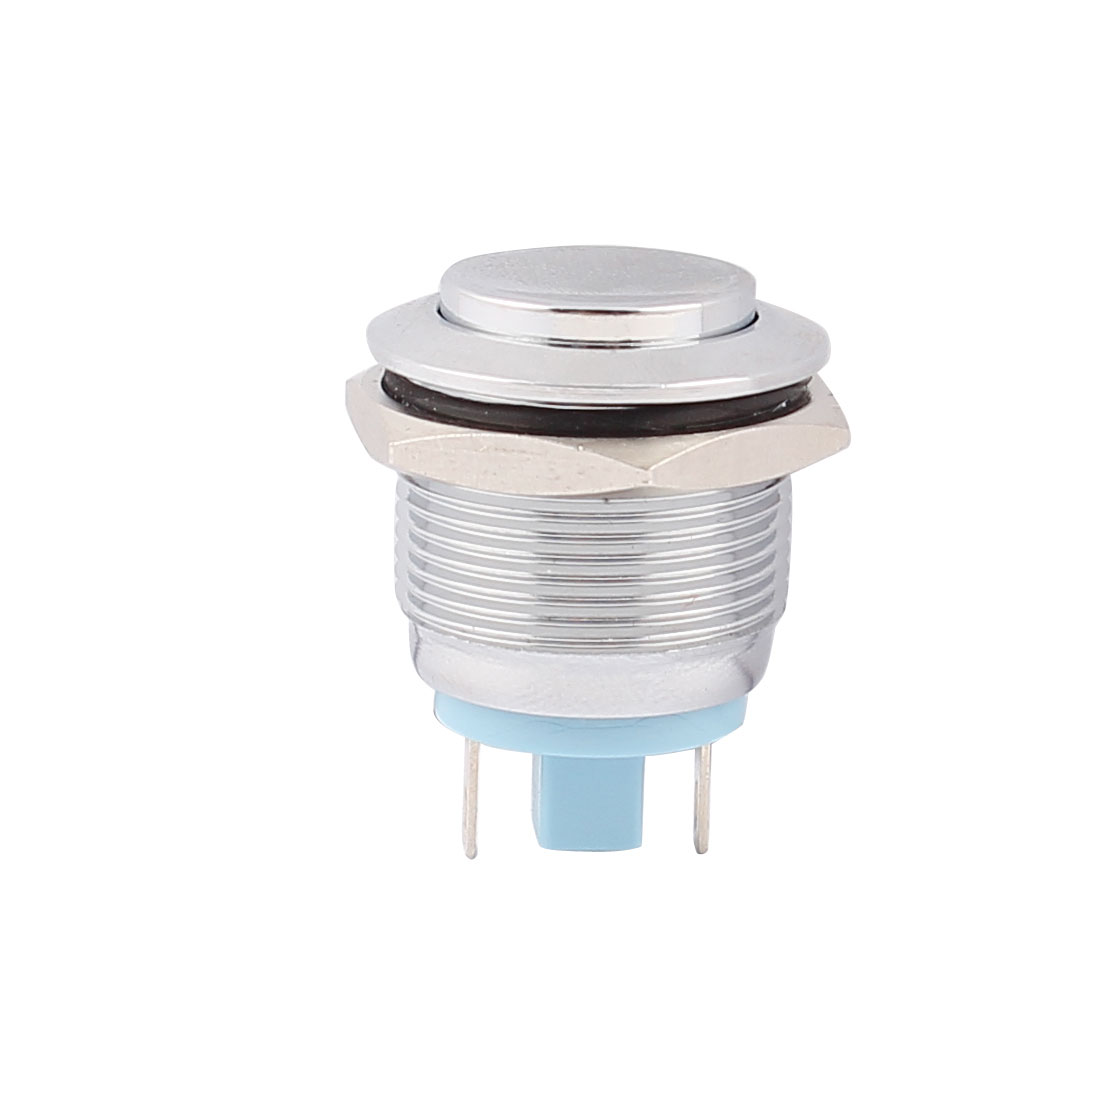 19mm Mounted Thread SPST 15mm High Head Momentary Push Button Switch